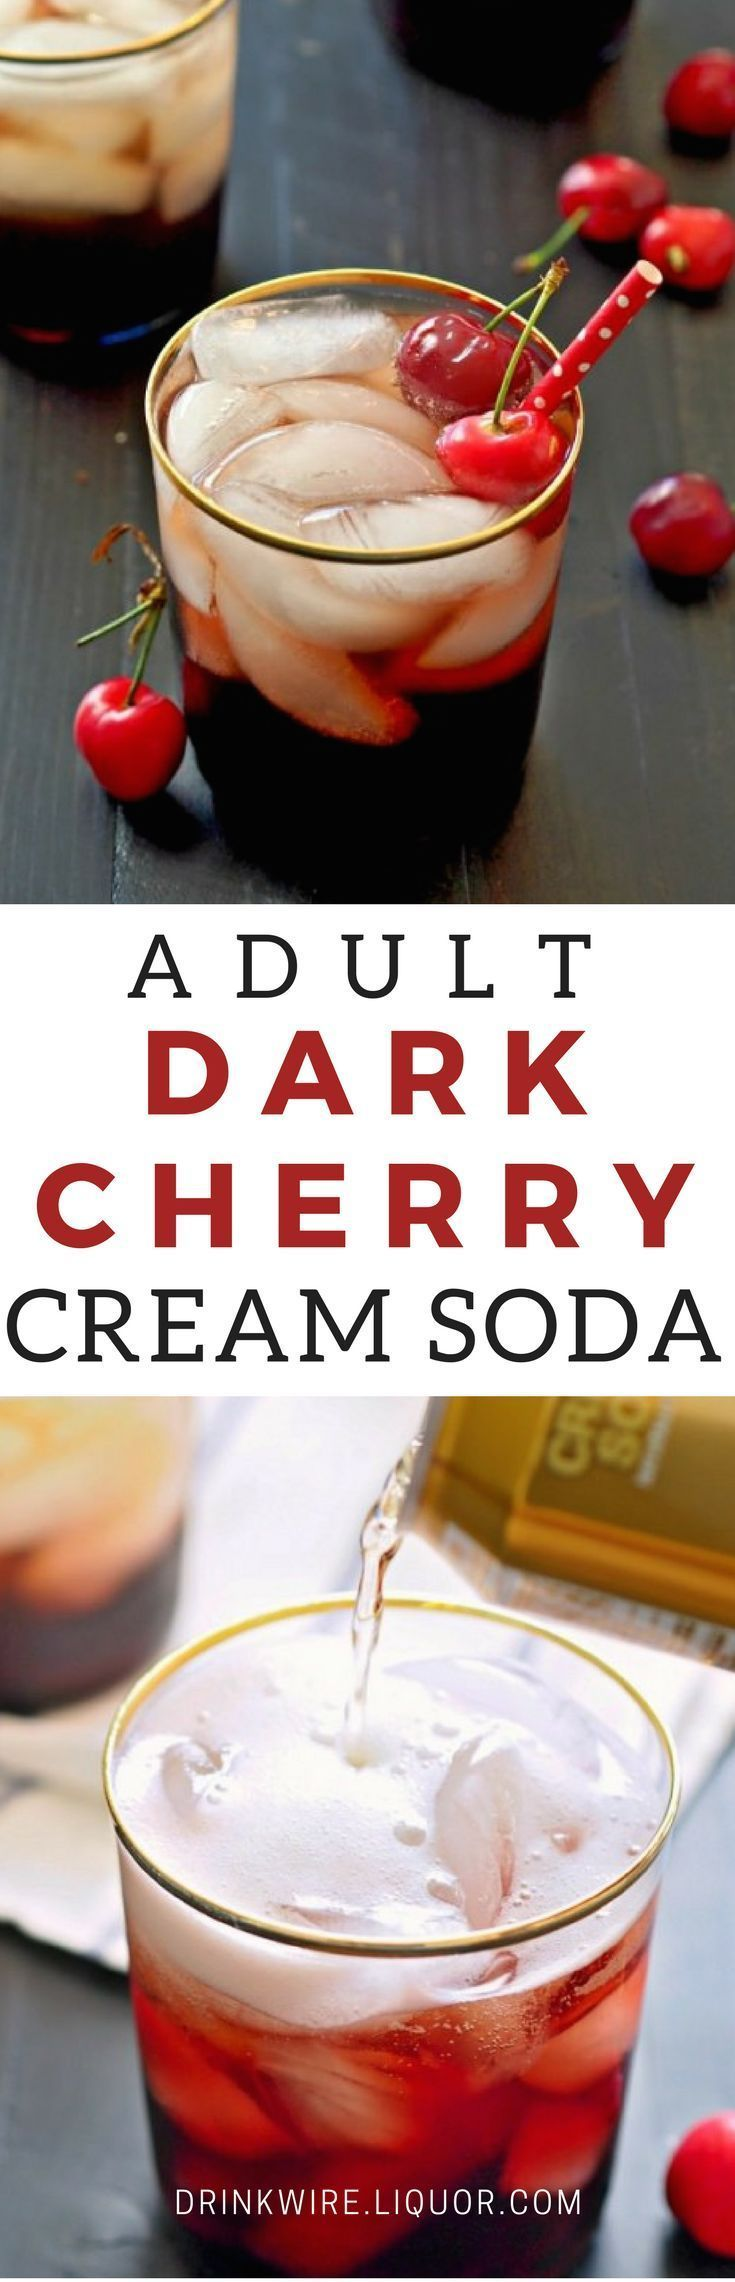 Adult Dark Cherry Cream Soda is the Answer to Your Sweet Boozy Cravings! Yum! {wineglasswriter.com/}